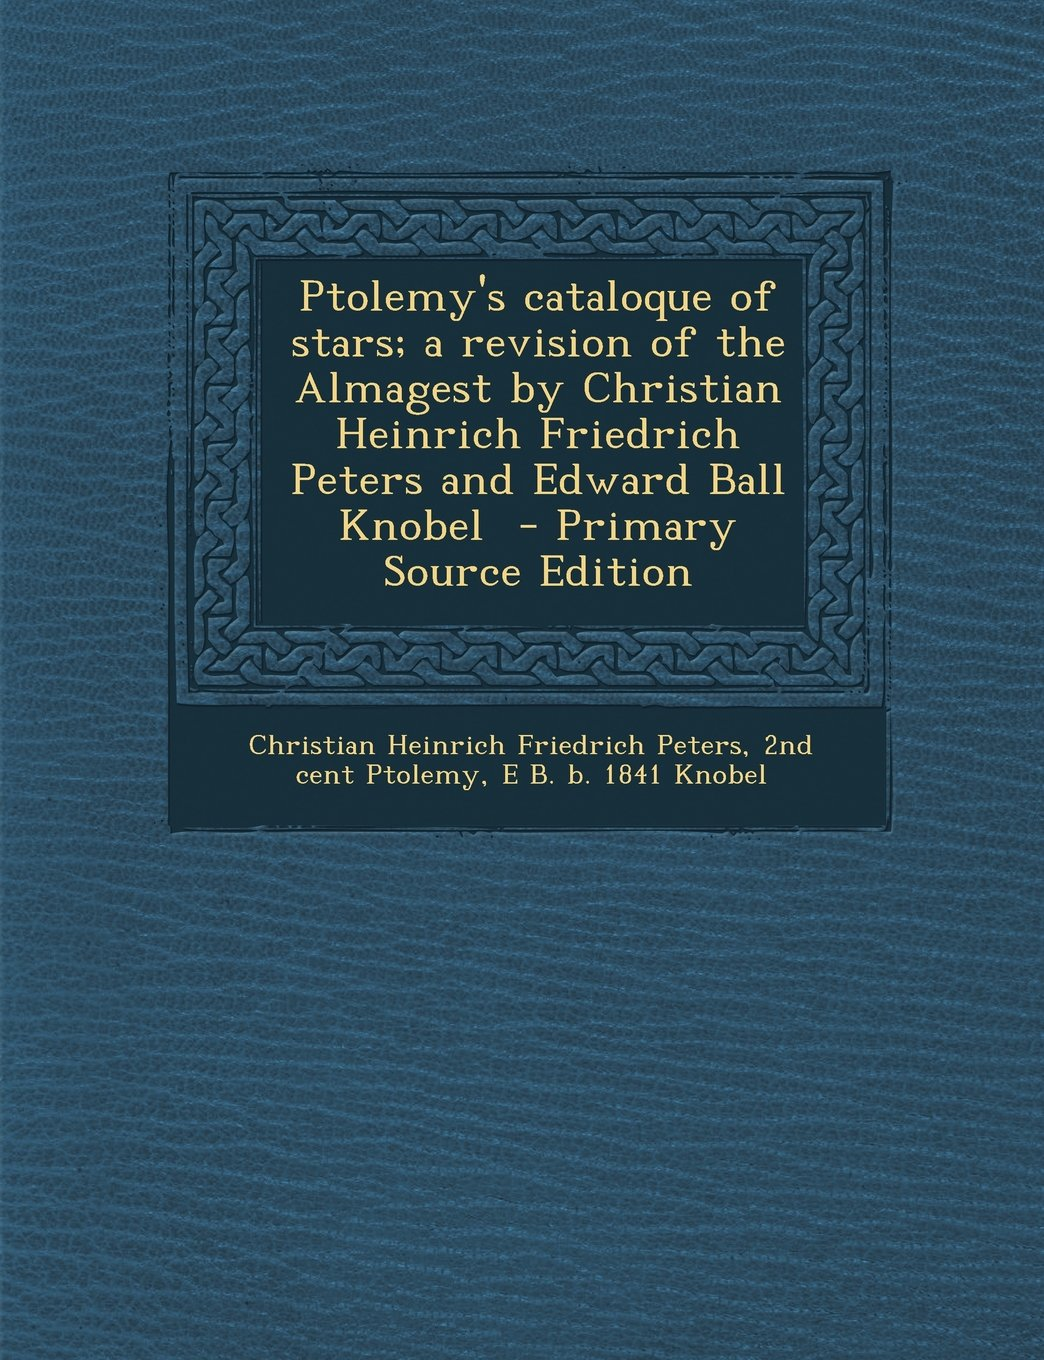 Download Ptolemy's Cataloque of Stars; A Revision of the Almagest by Christian Heinrich Friedrich Peters and Edward Ball Knobel - Primary Source Edition pdf